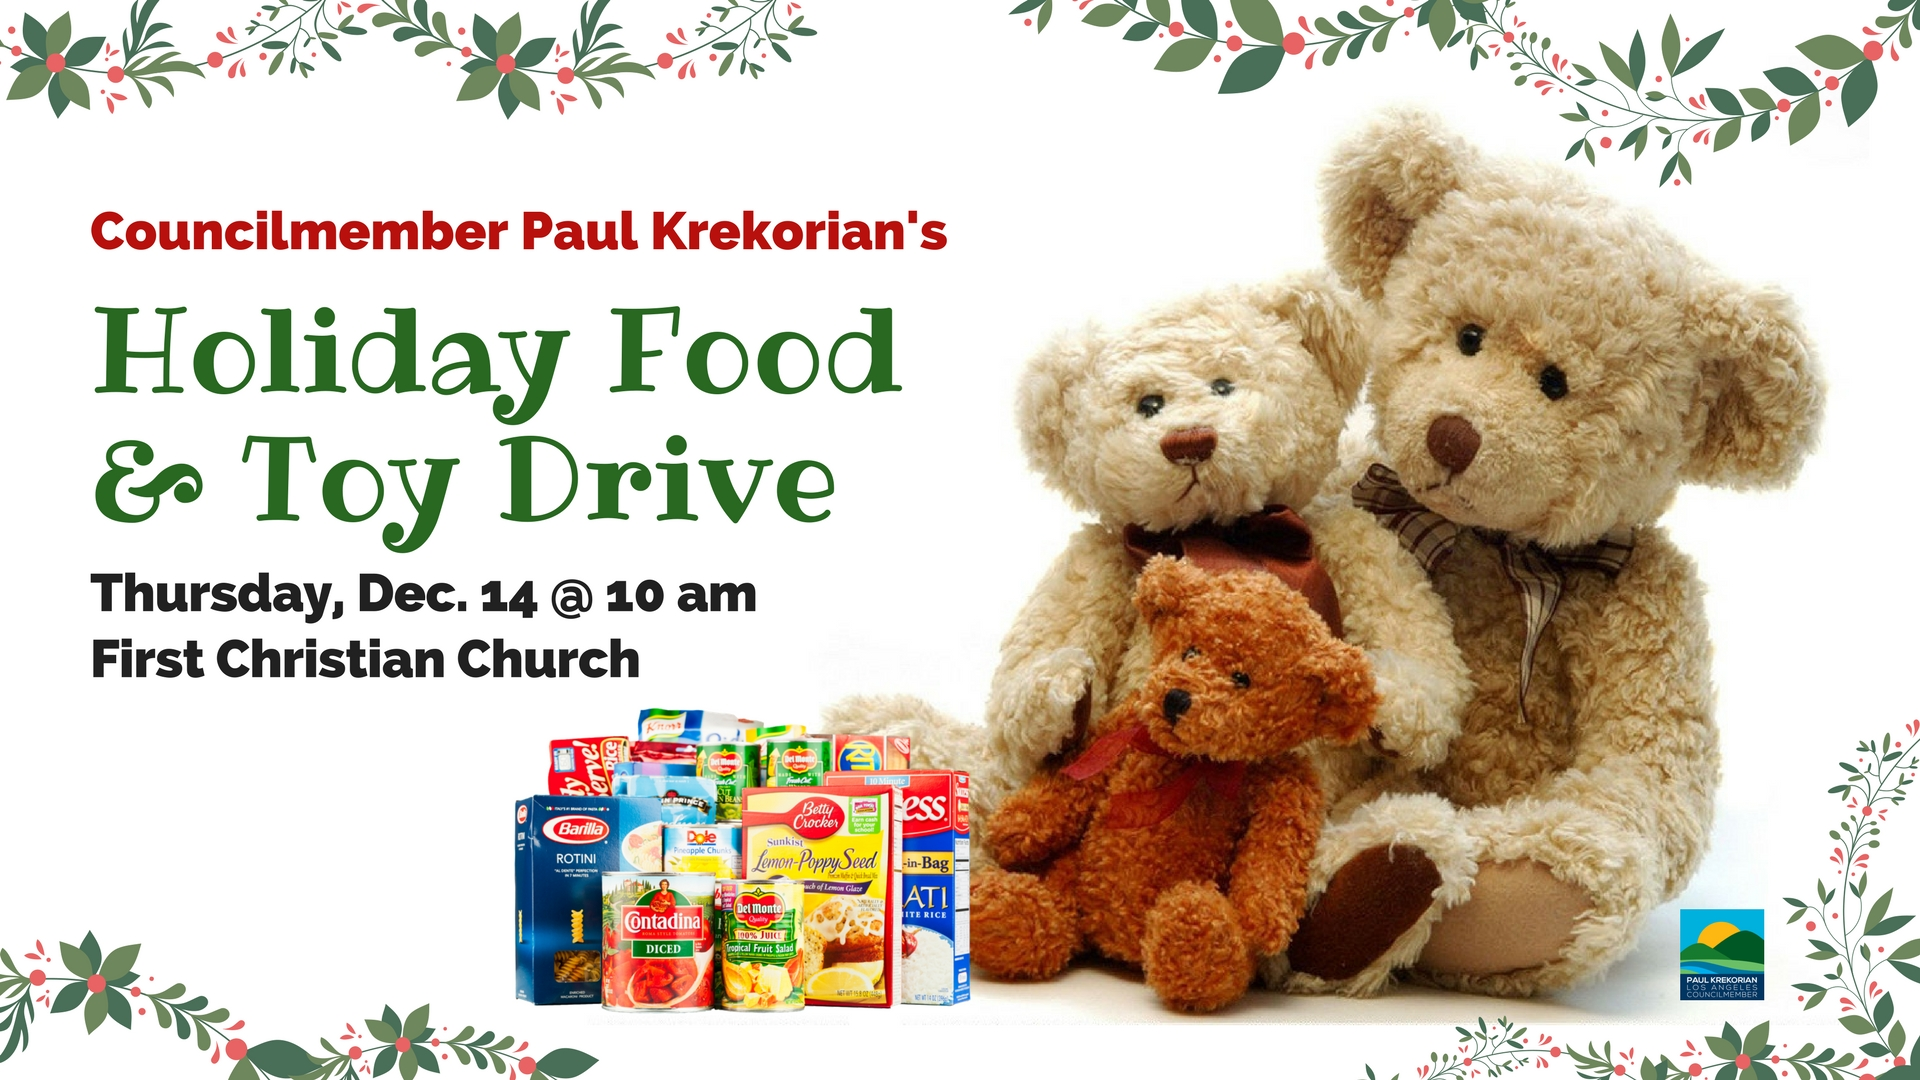 FB_event_Holiday_Food___Toy_Drive.jpg